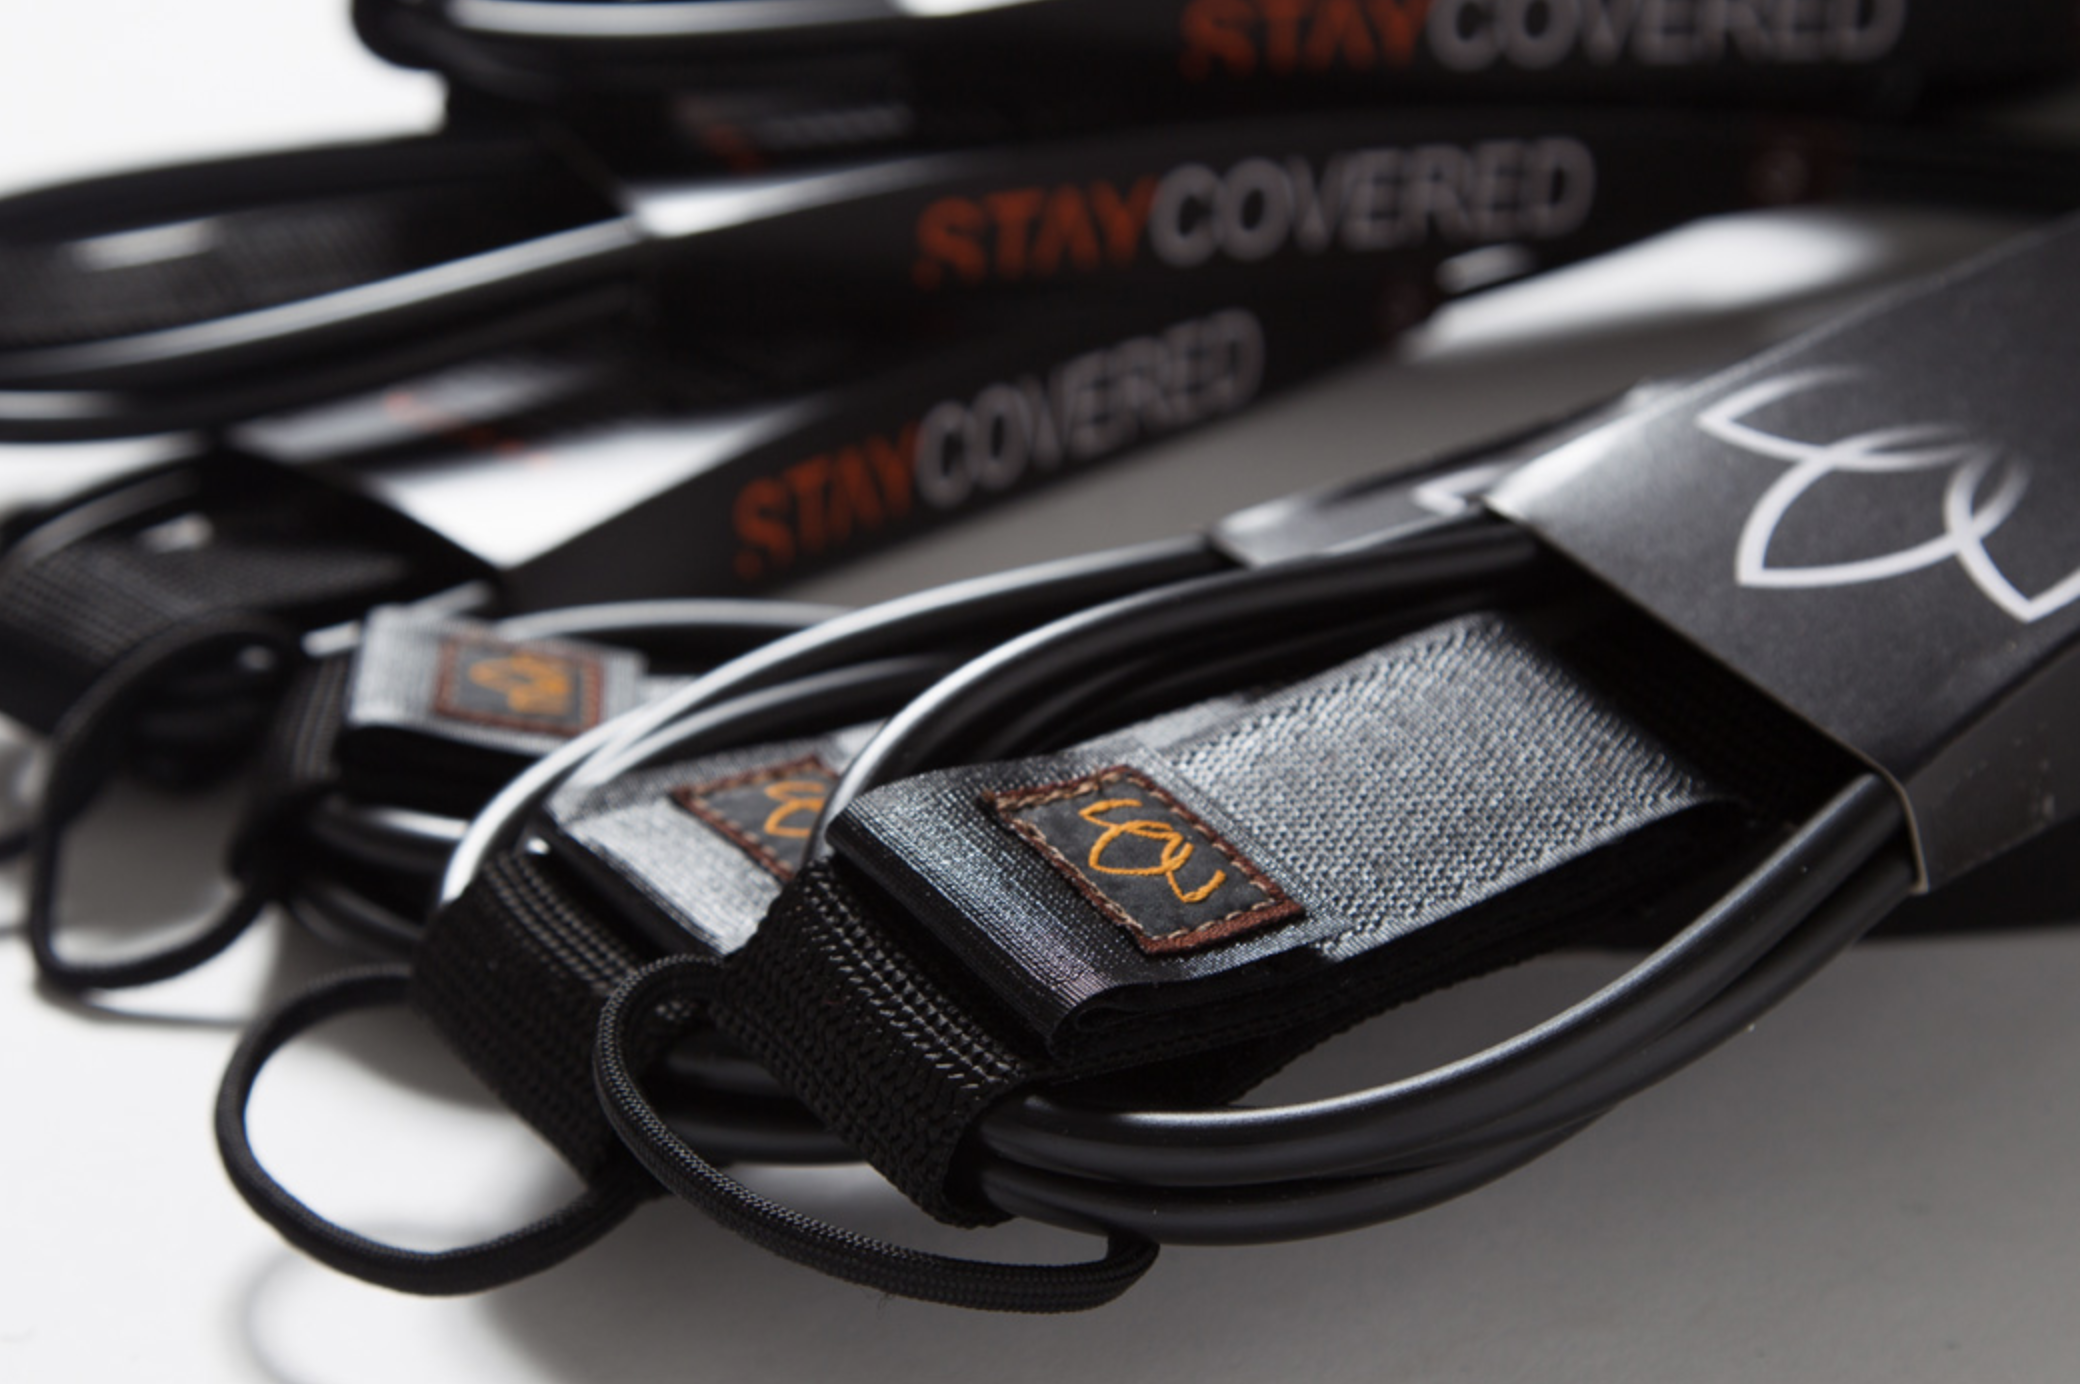 [STAY COVERED] リーシュ 9ft ANKLE COMP mat black